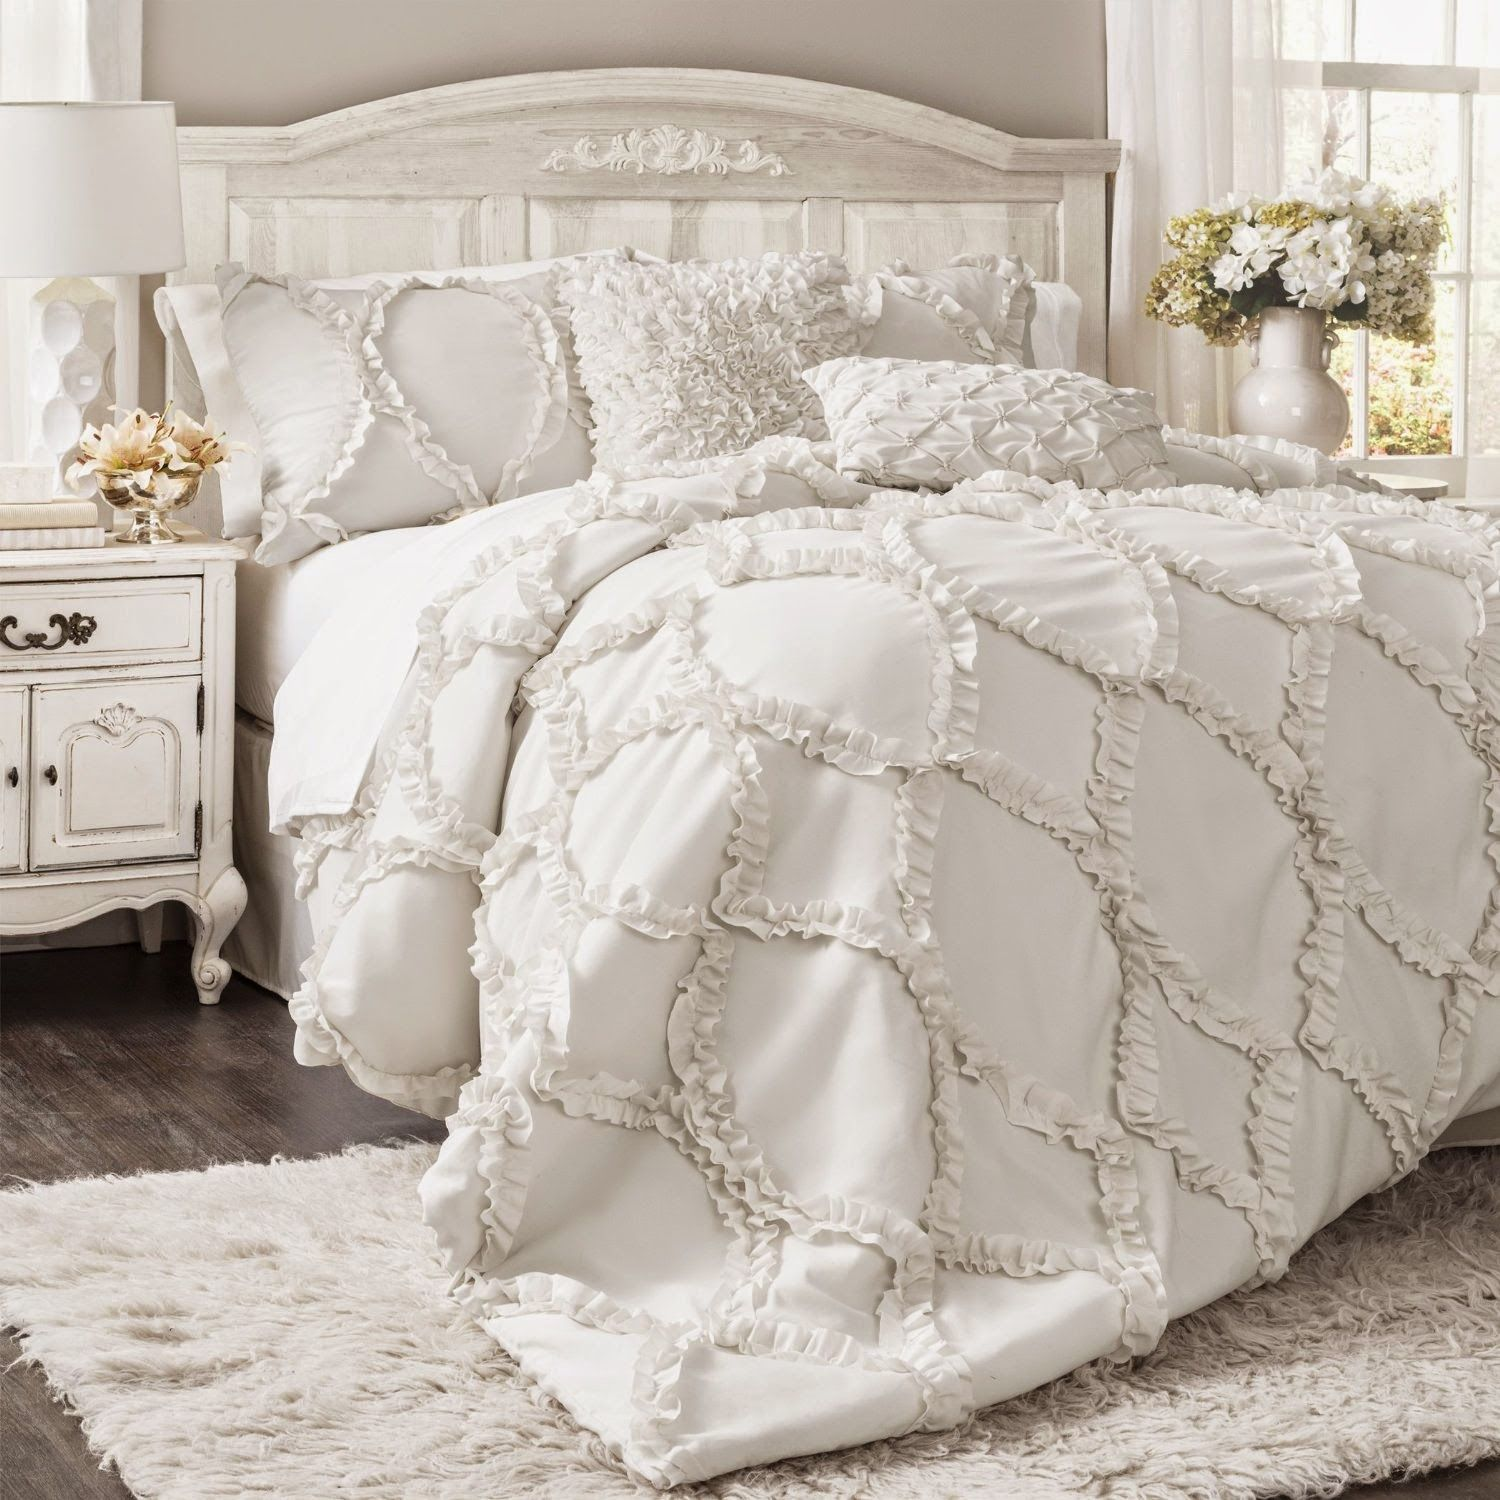 13 bedding sets that won 39 t break the budget bedrooms. Black Bedroom Furniture Sets. Home Design Ideas